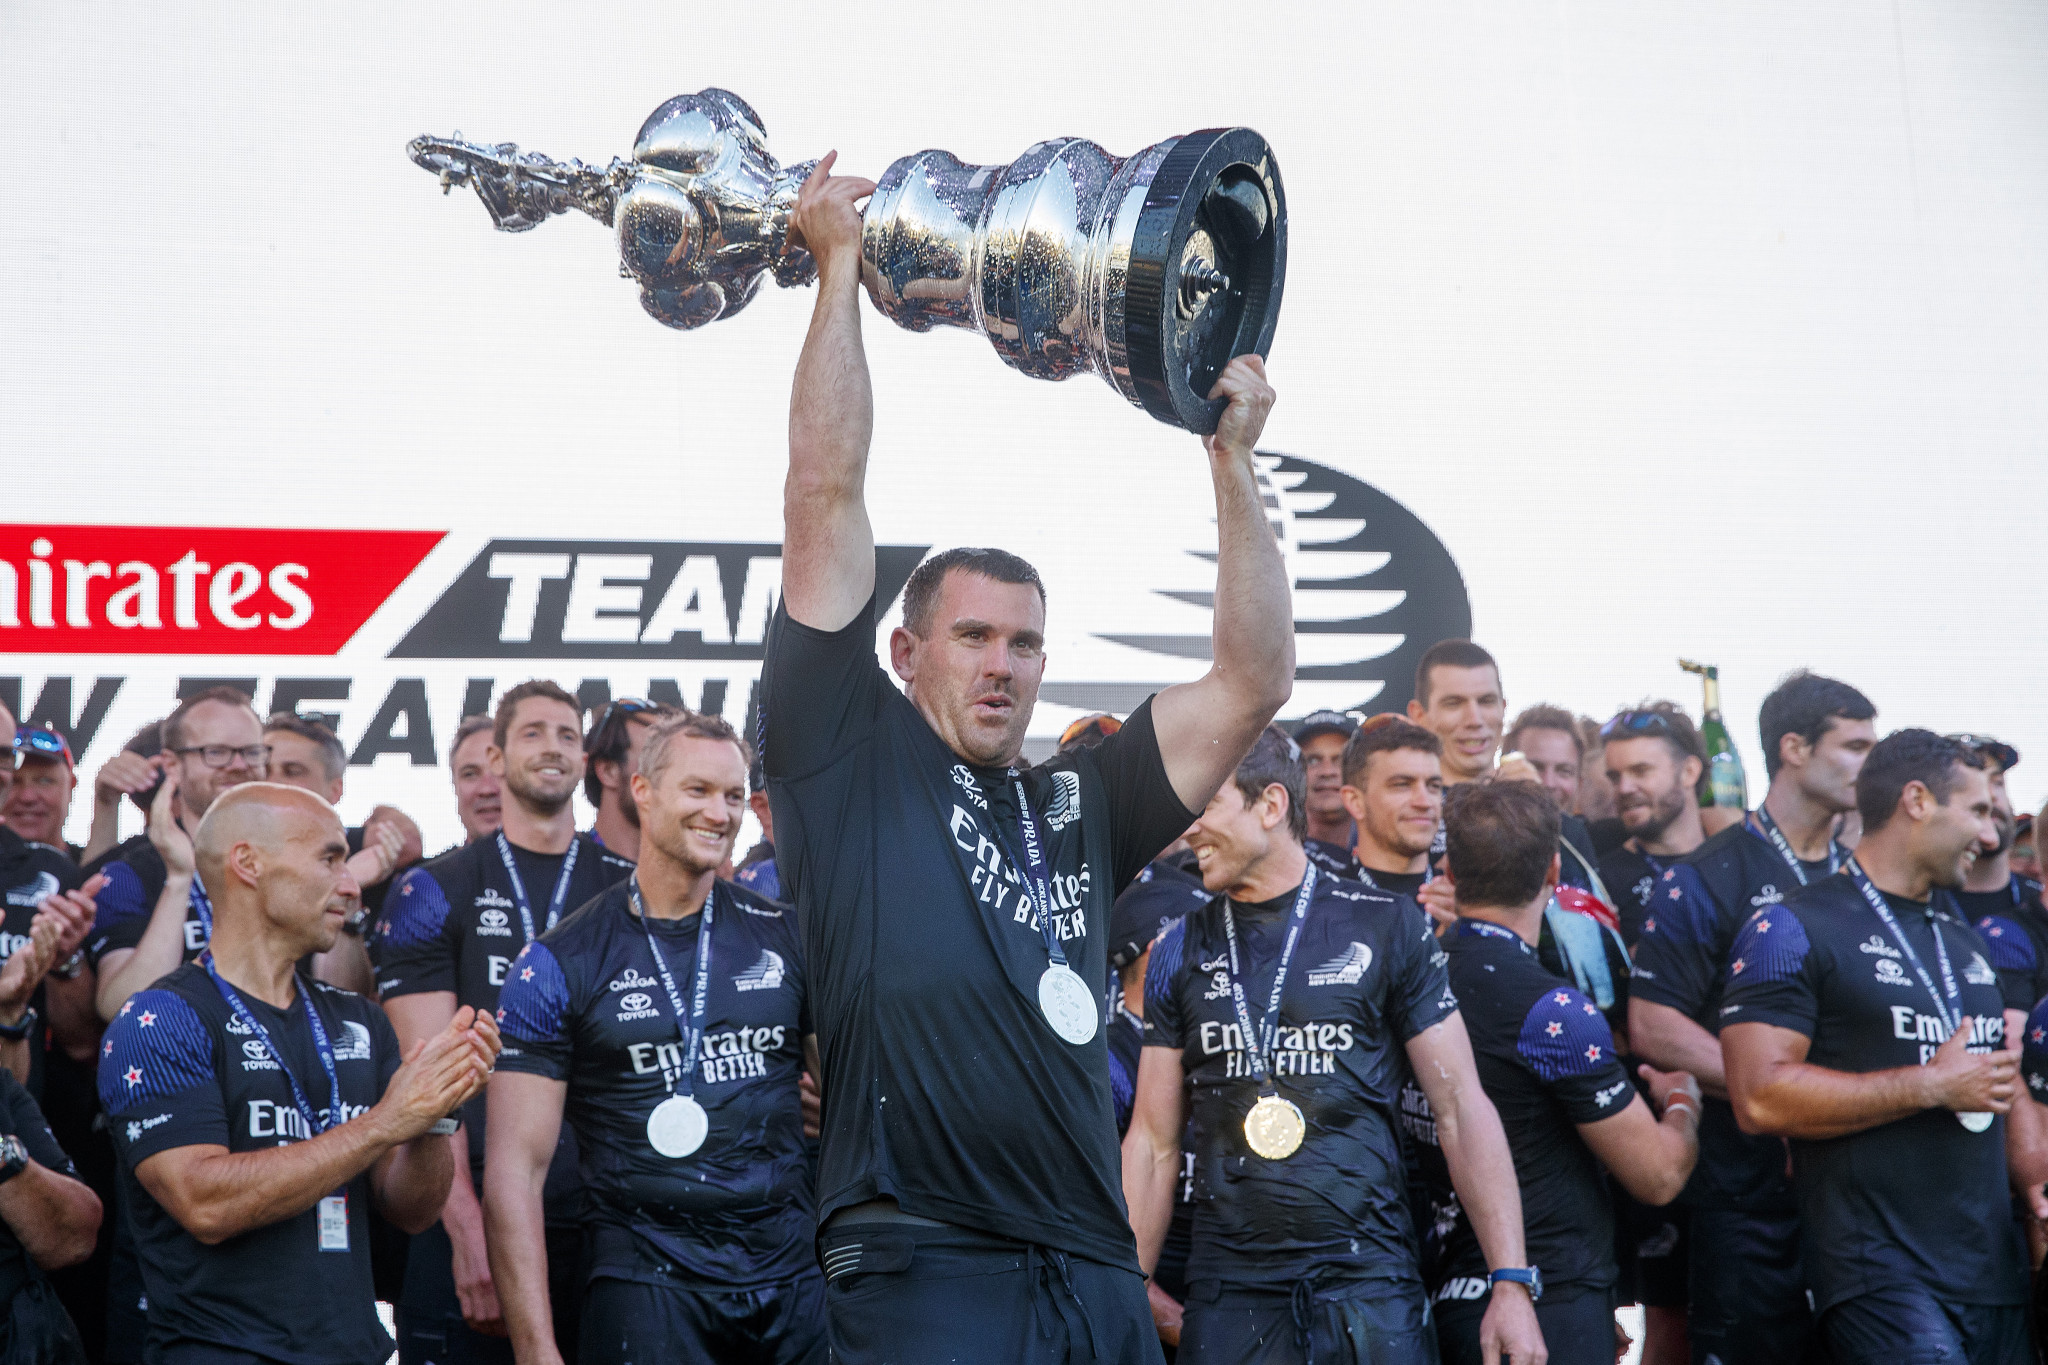 Emirates Team New Zealand won the America's Cup earlier this year ©Getty Images